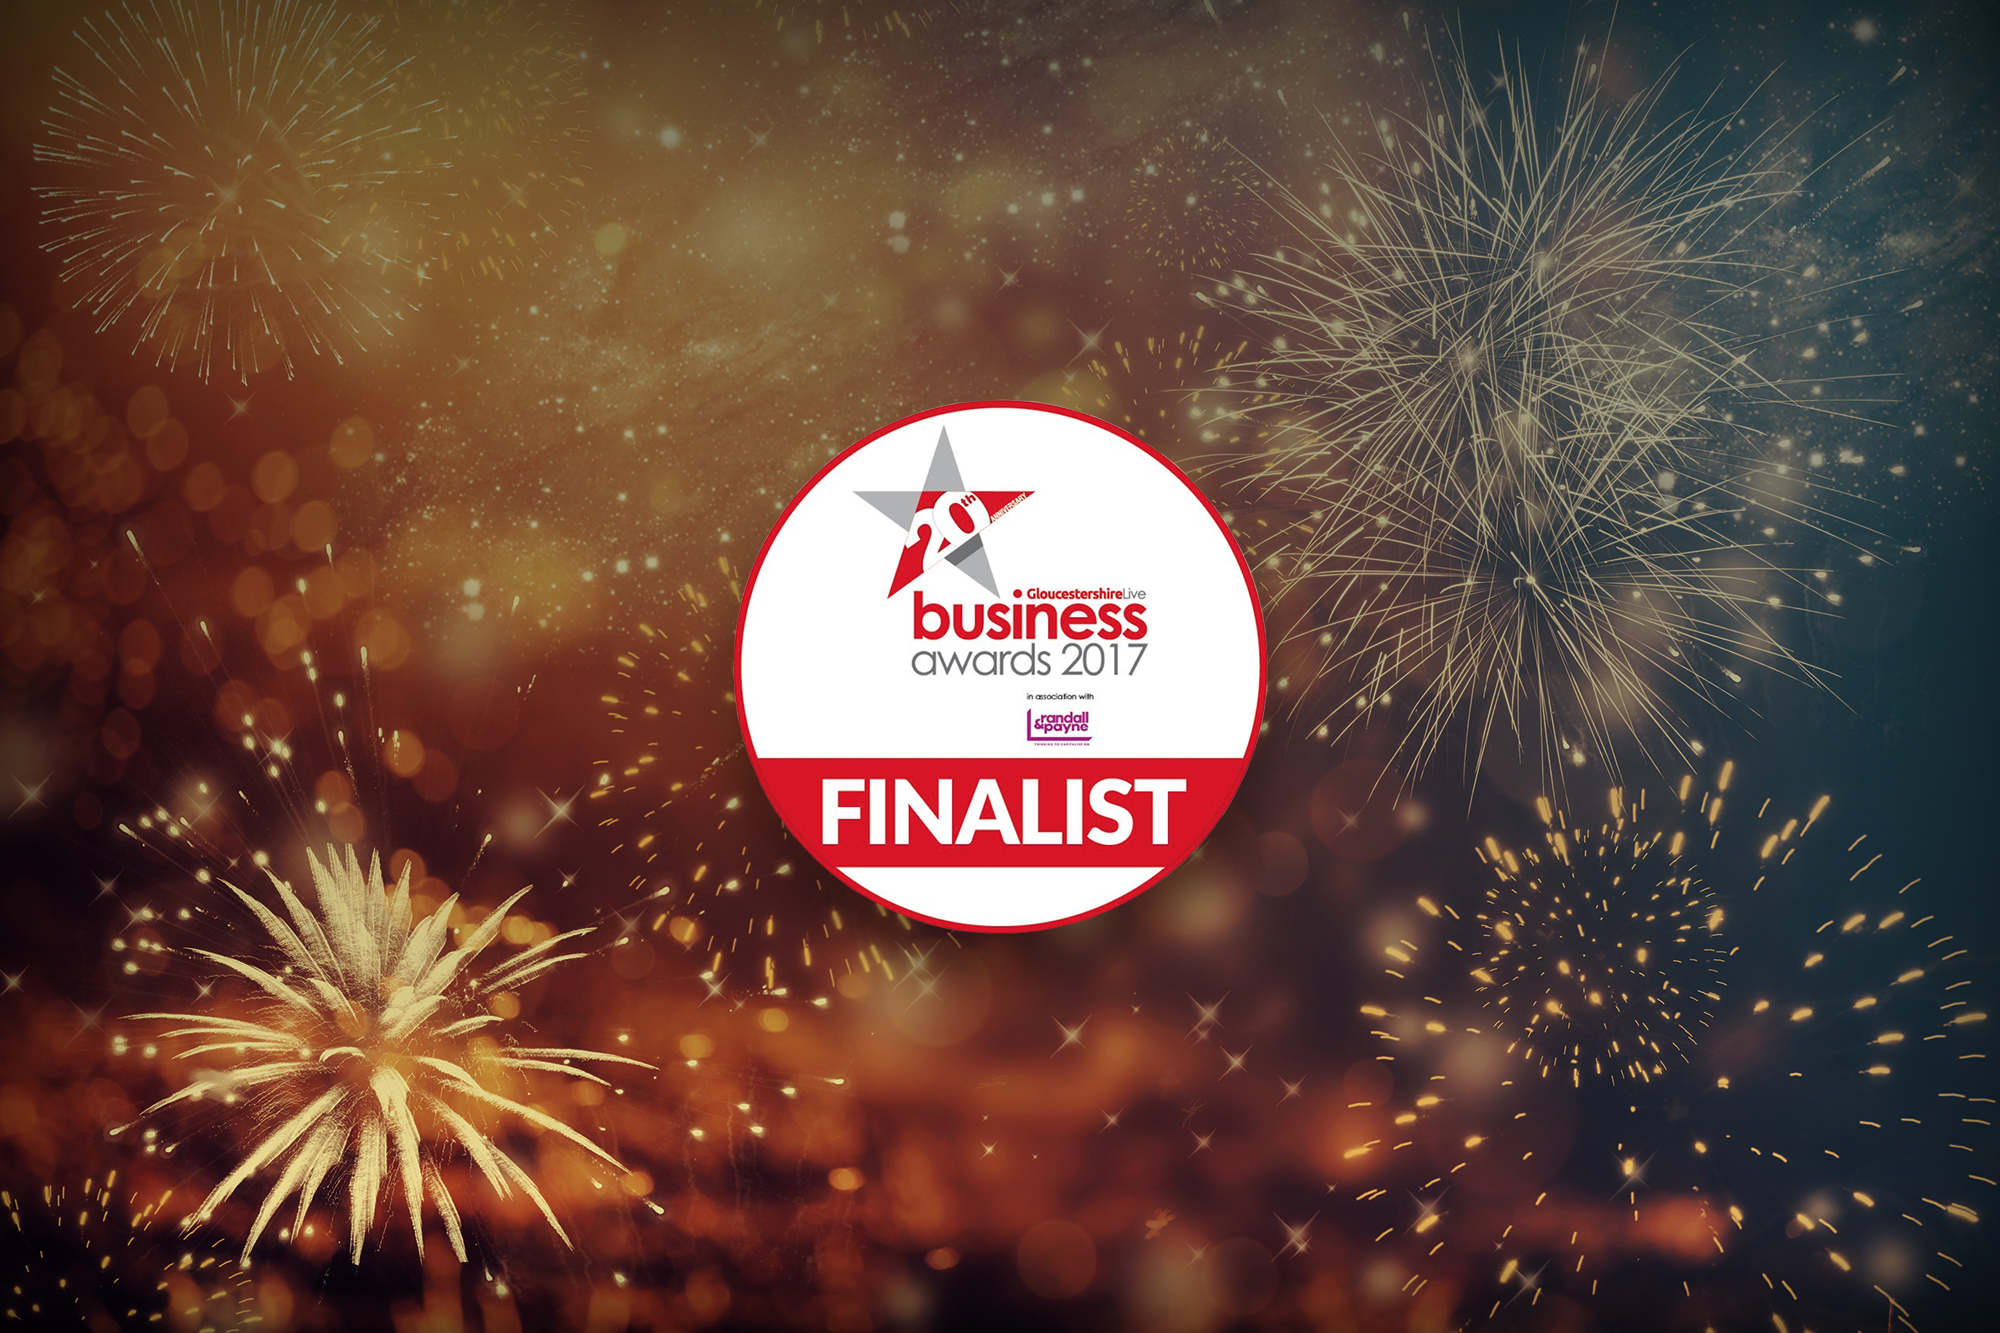 Glos Business Awards Finalist